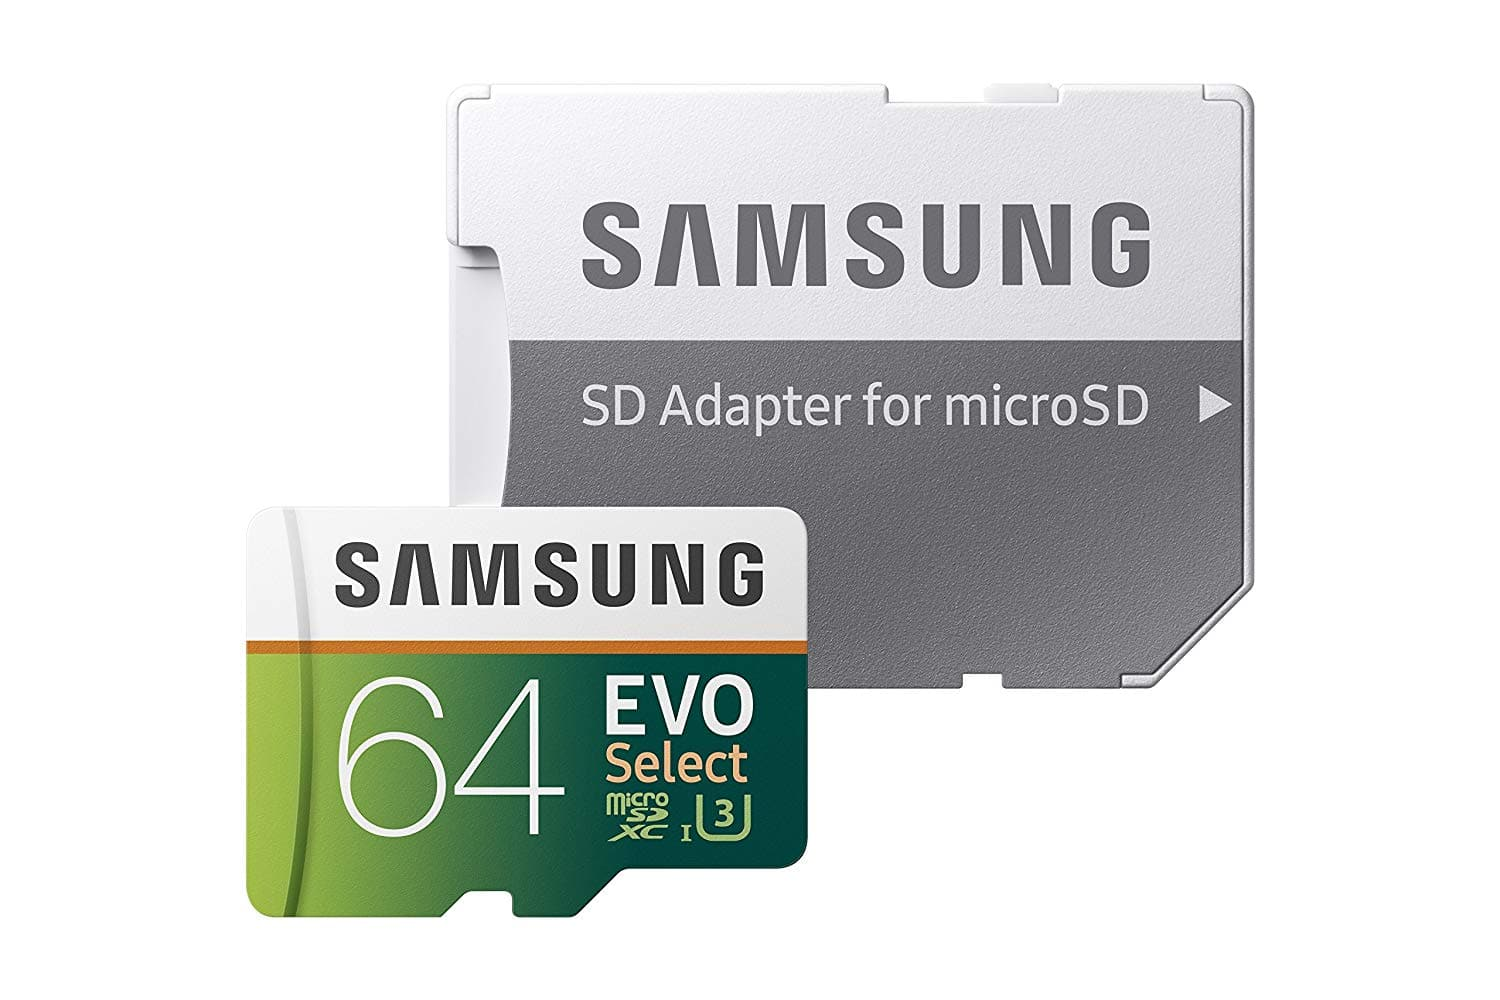 Samsung 64GB 100MB/s (U3) MicroSDXC EVO Select Memory Card with Full-Size Adapter for $12 with Prime FS